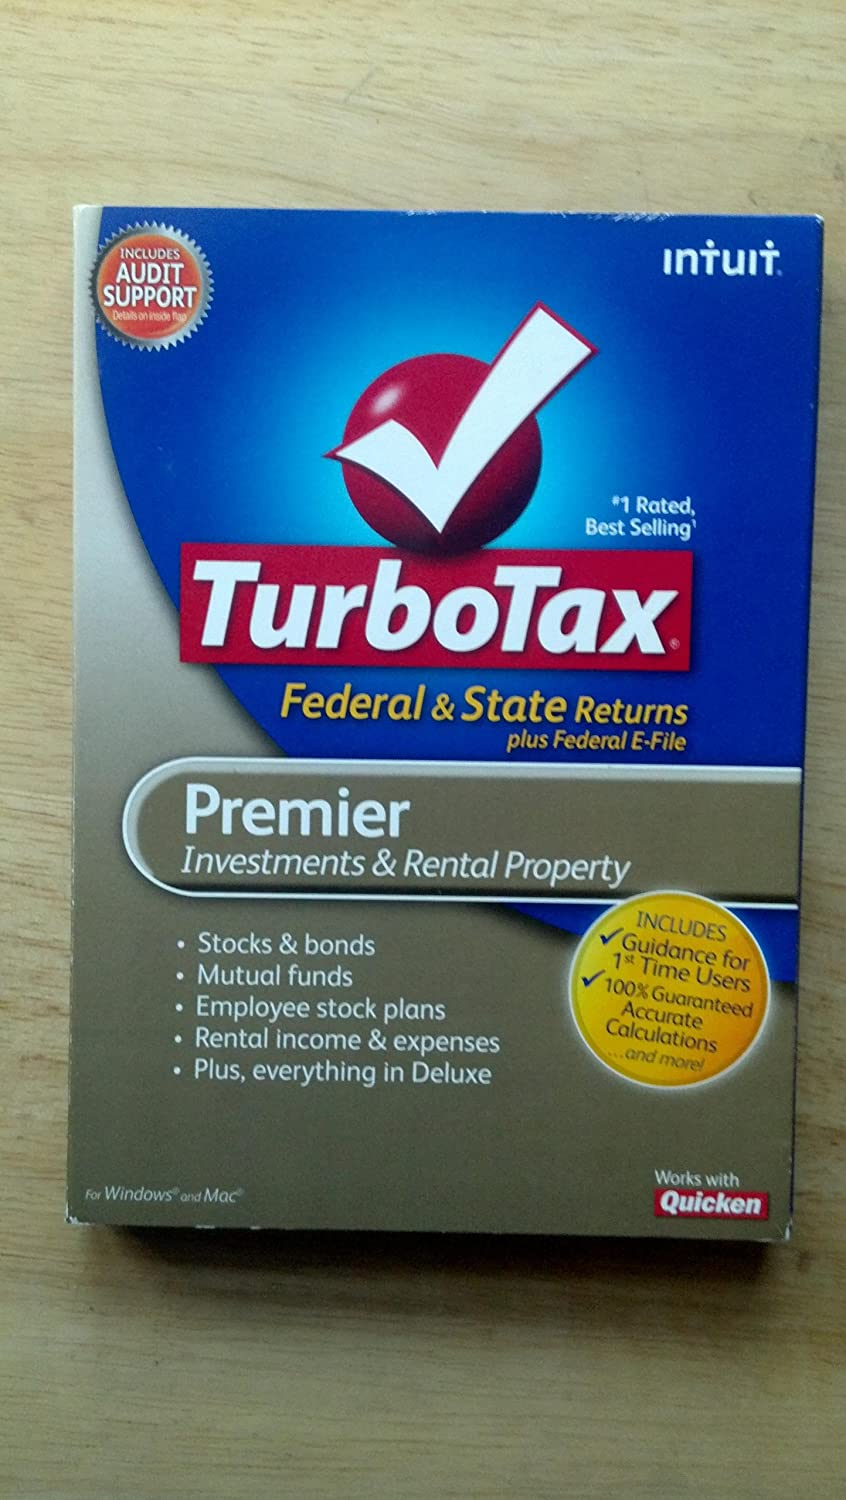 TurboTax Premier Federal + eFile + State 2010 (PC and Mac)